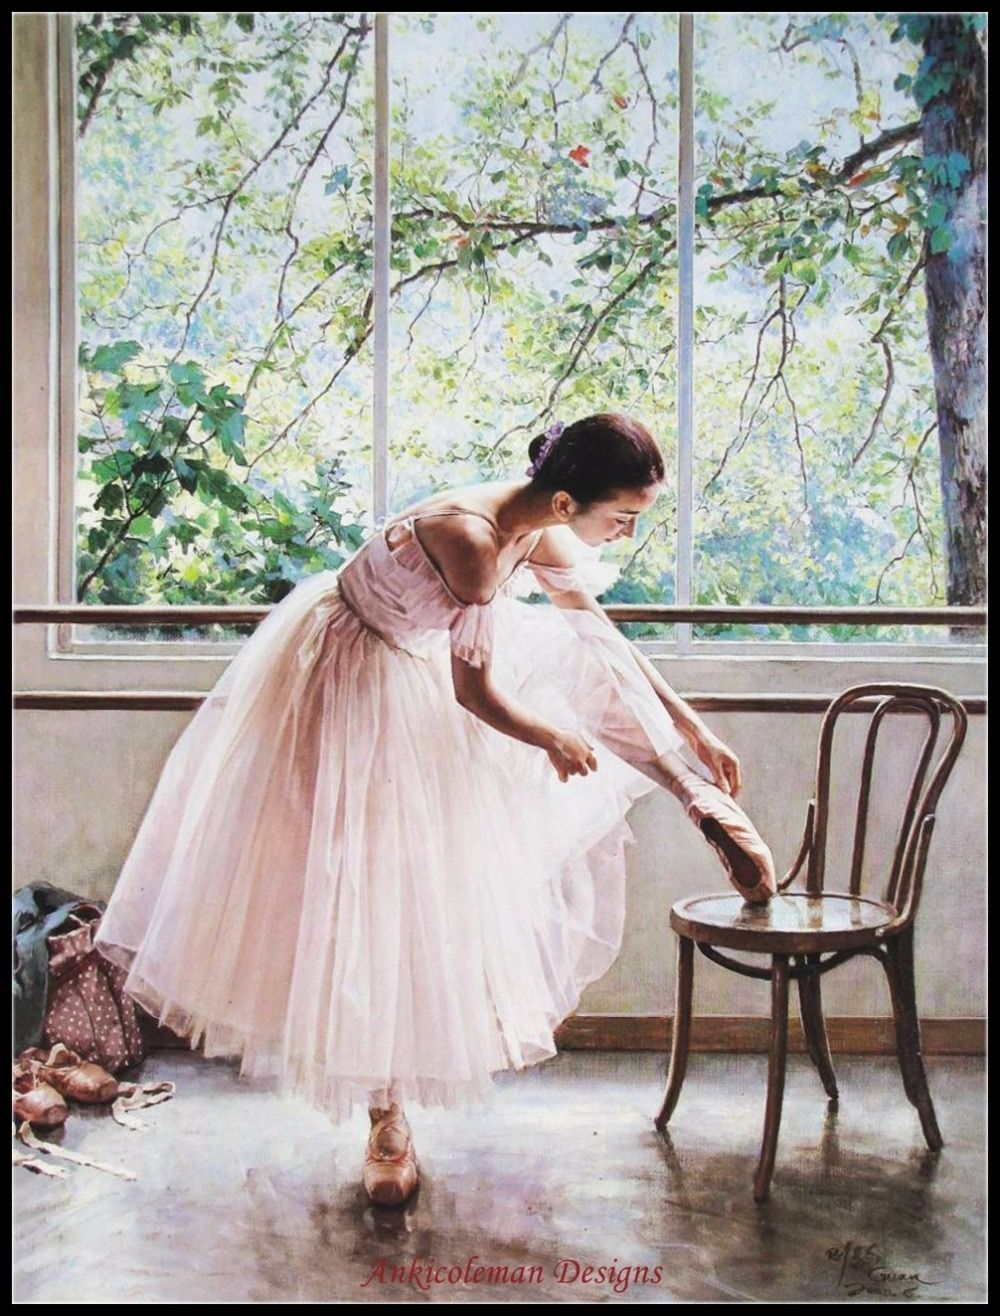 Needlework for embroidery French DMC High Quality - Counted Cross Stitch Kits 14 ct Oil painting - Ballet Dance Girl